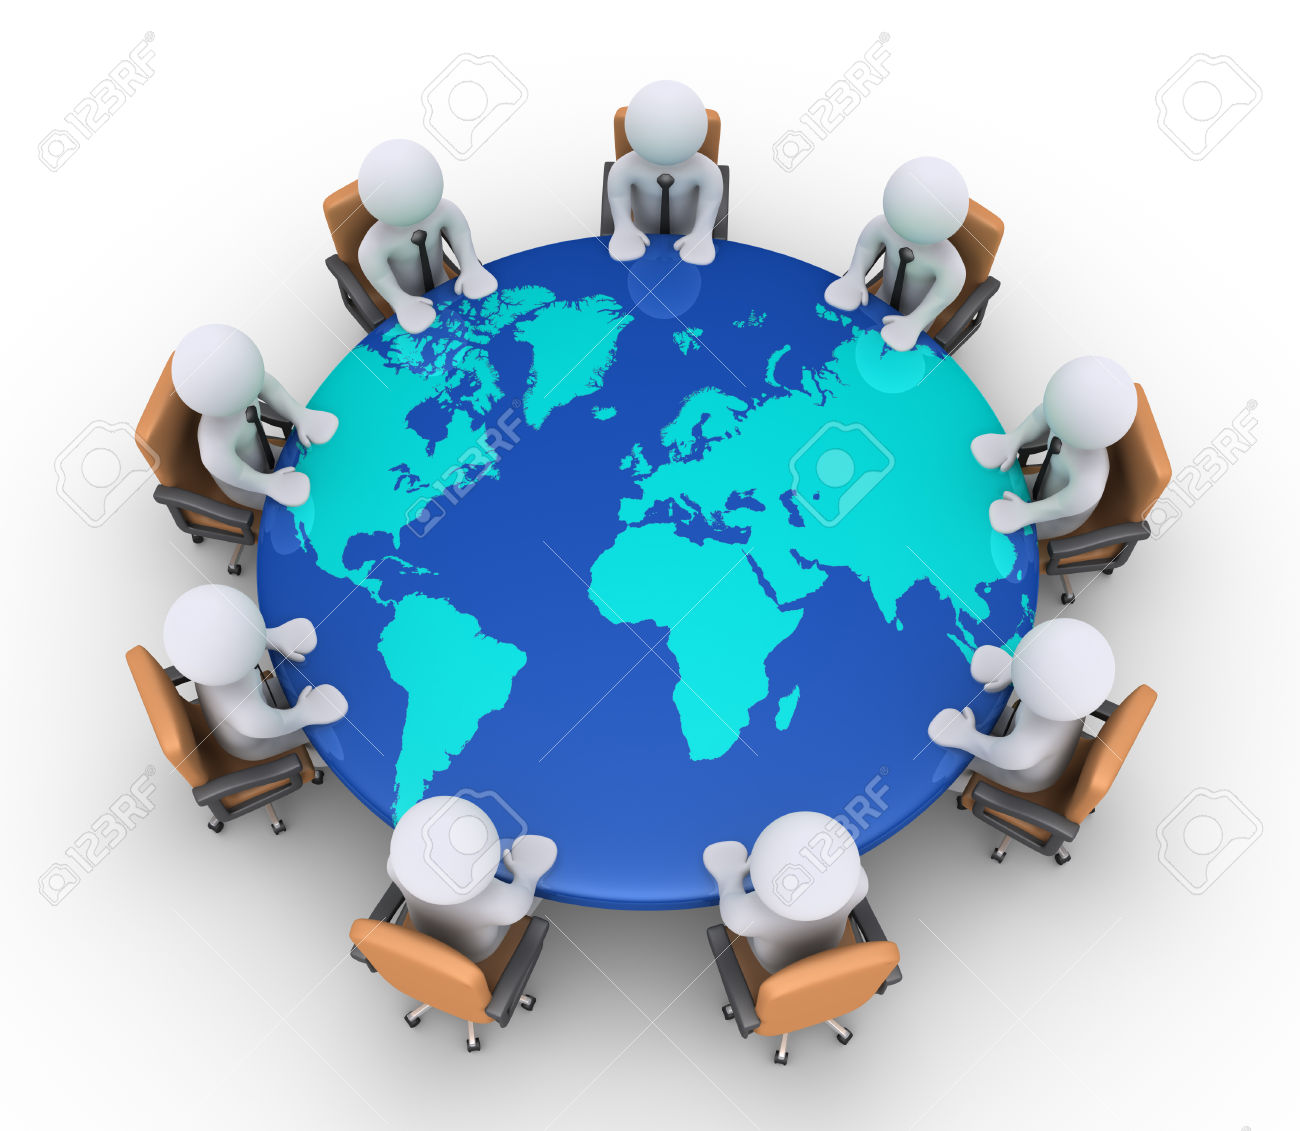 World map round clipart image free 3d Businessmen Sitting On Armchairs And A Round Table With The ... image free